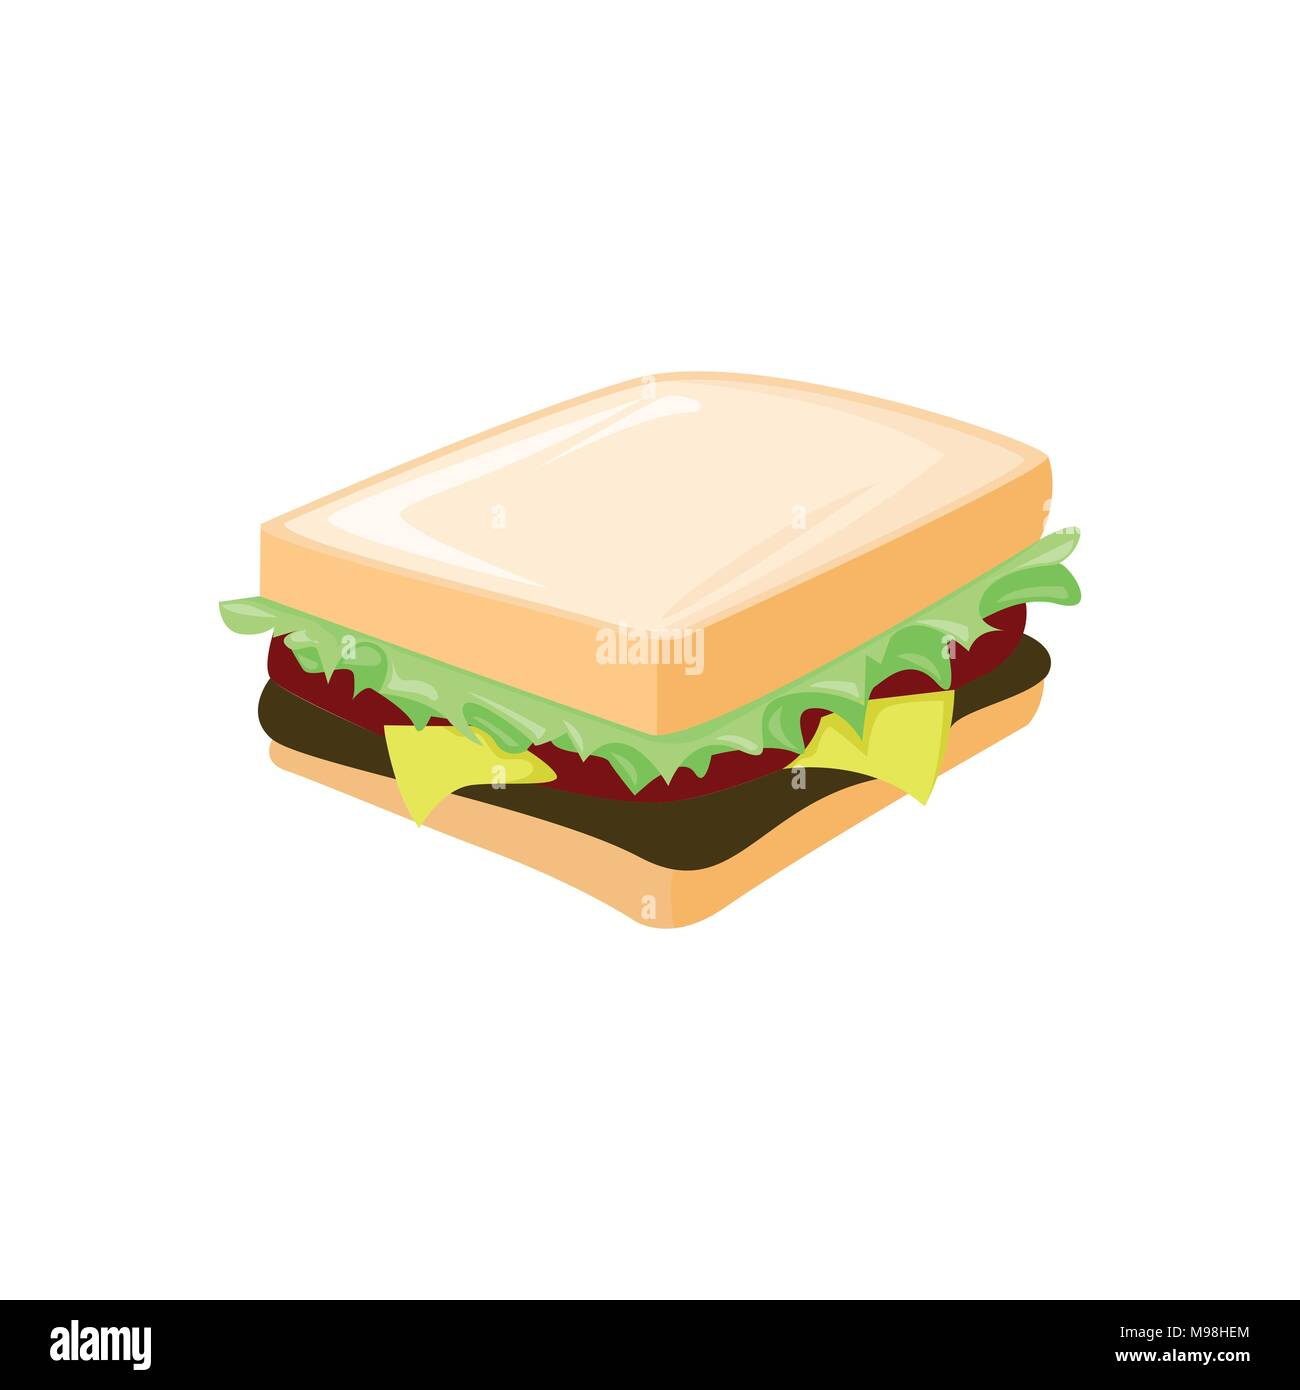 Fresh Sandwich Breakfast Food Cafe Vector Illustration Graphic Design - Stock Image